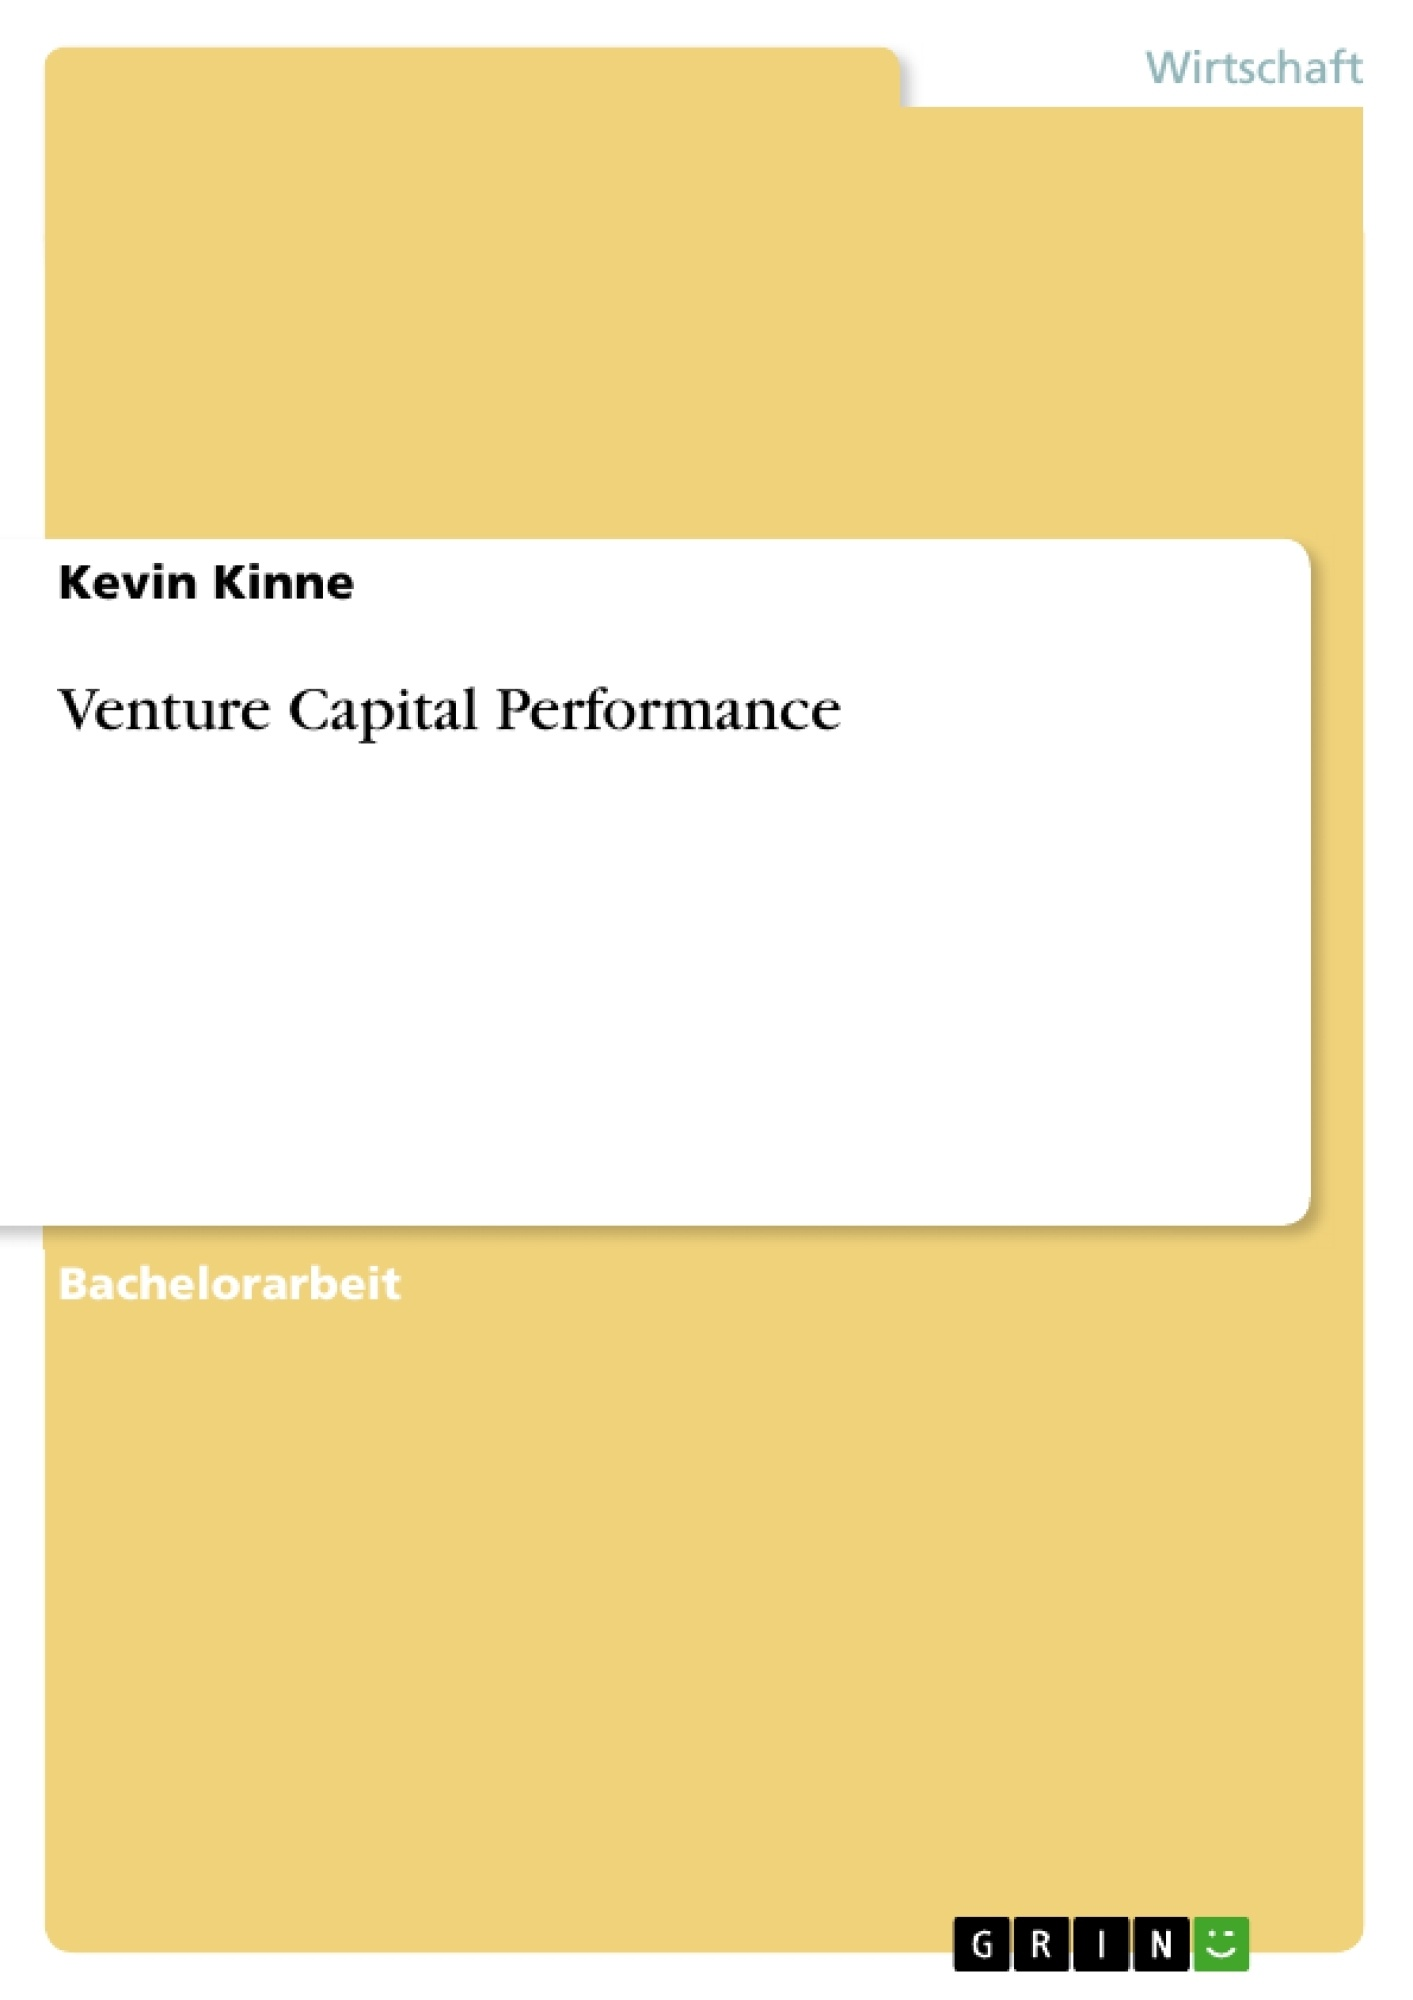 Titel: Venture Capital Performance